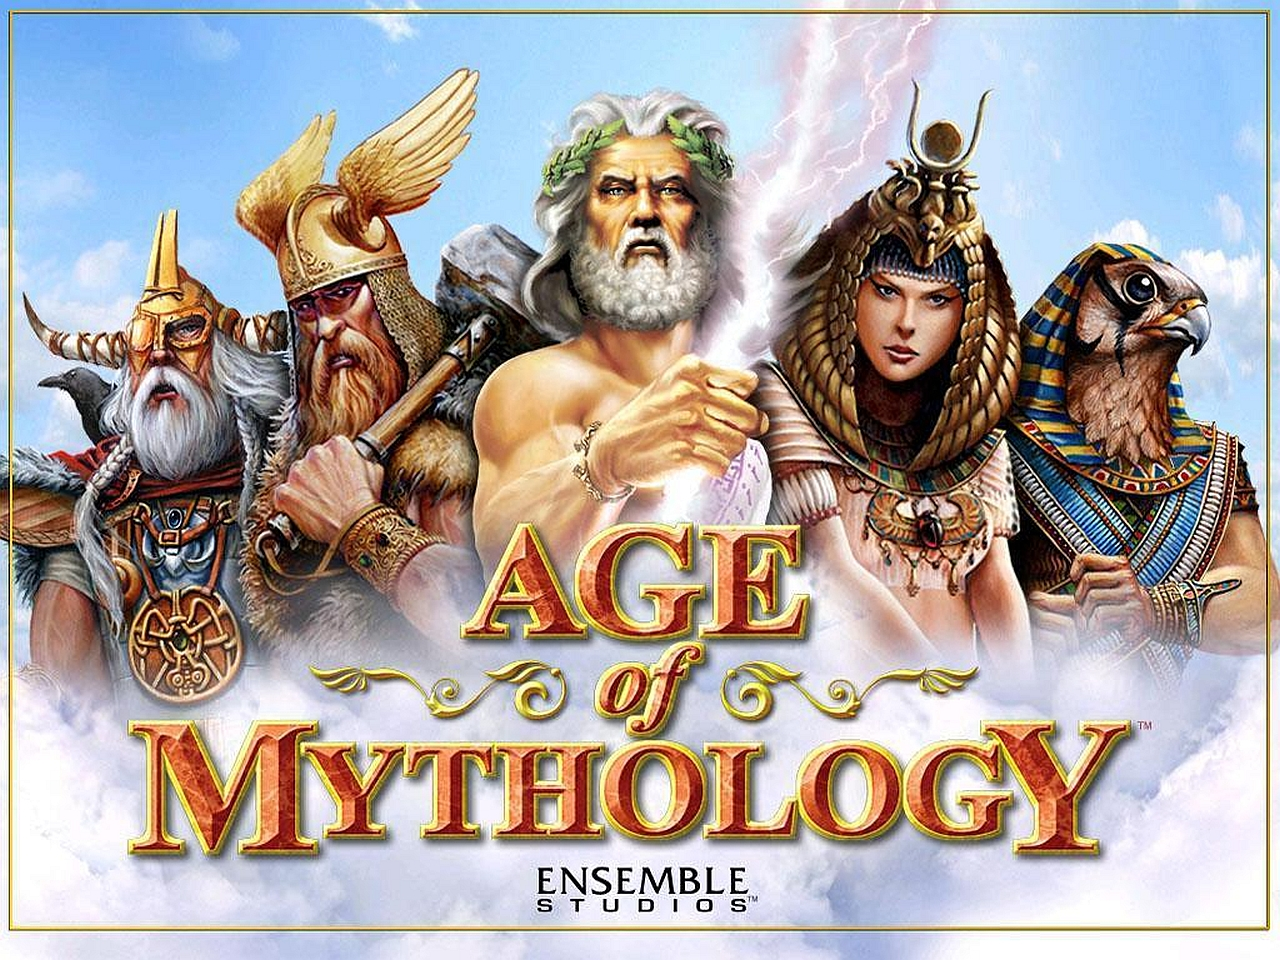 Age of Mythology Hasn't Been Forgotten, Says Microsoft's